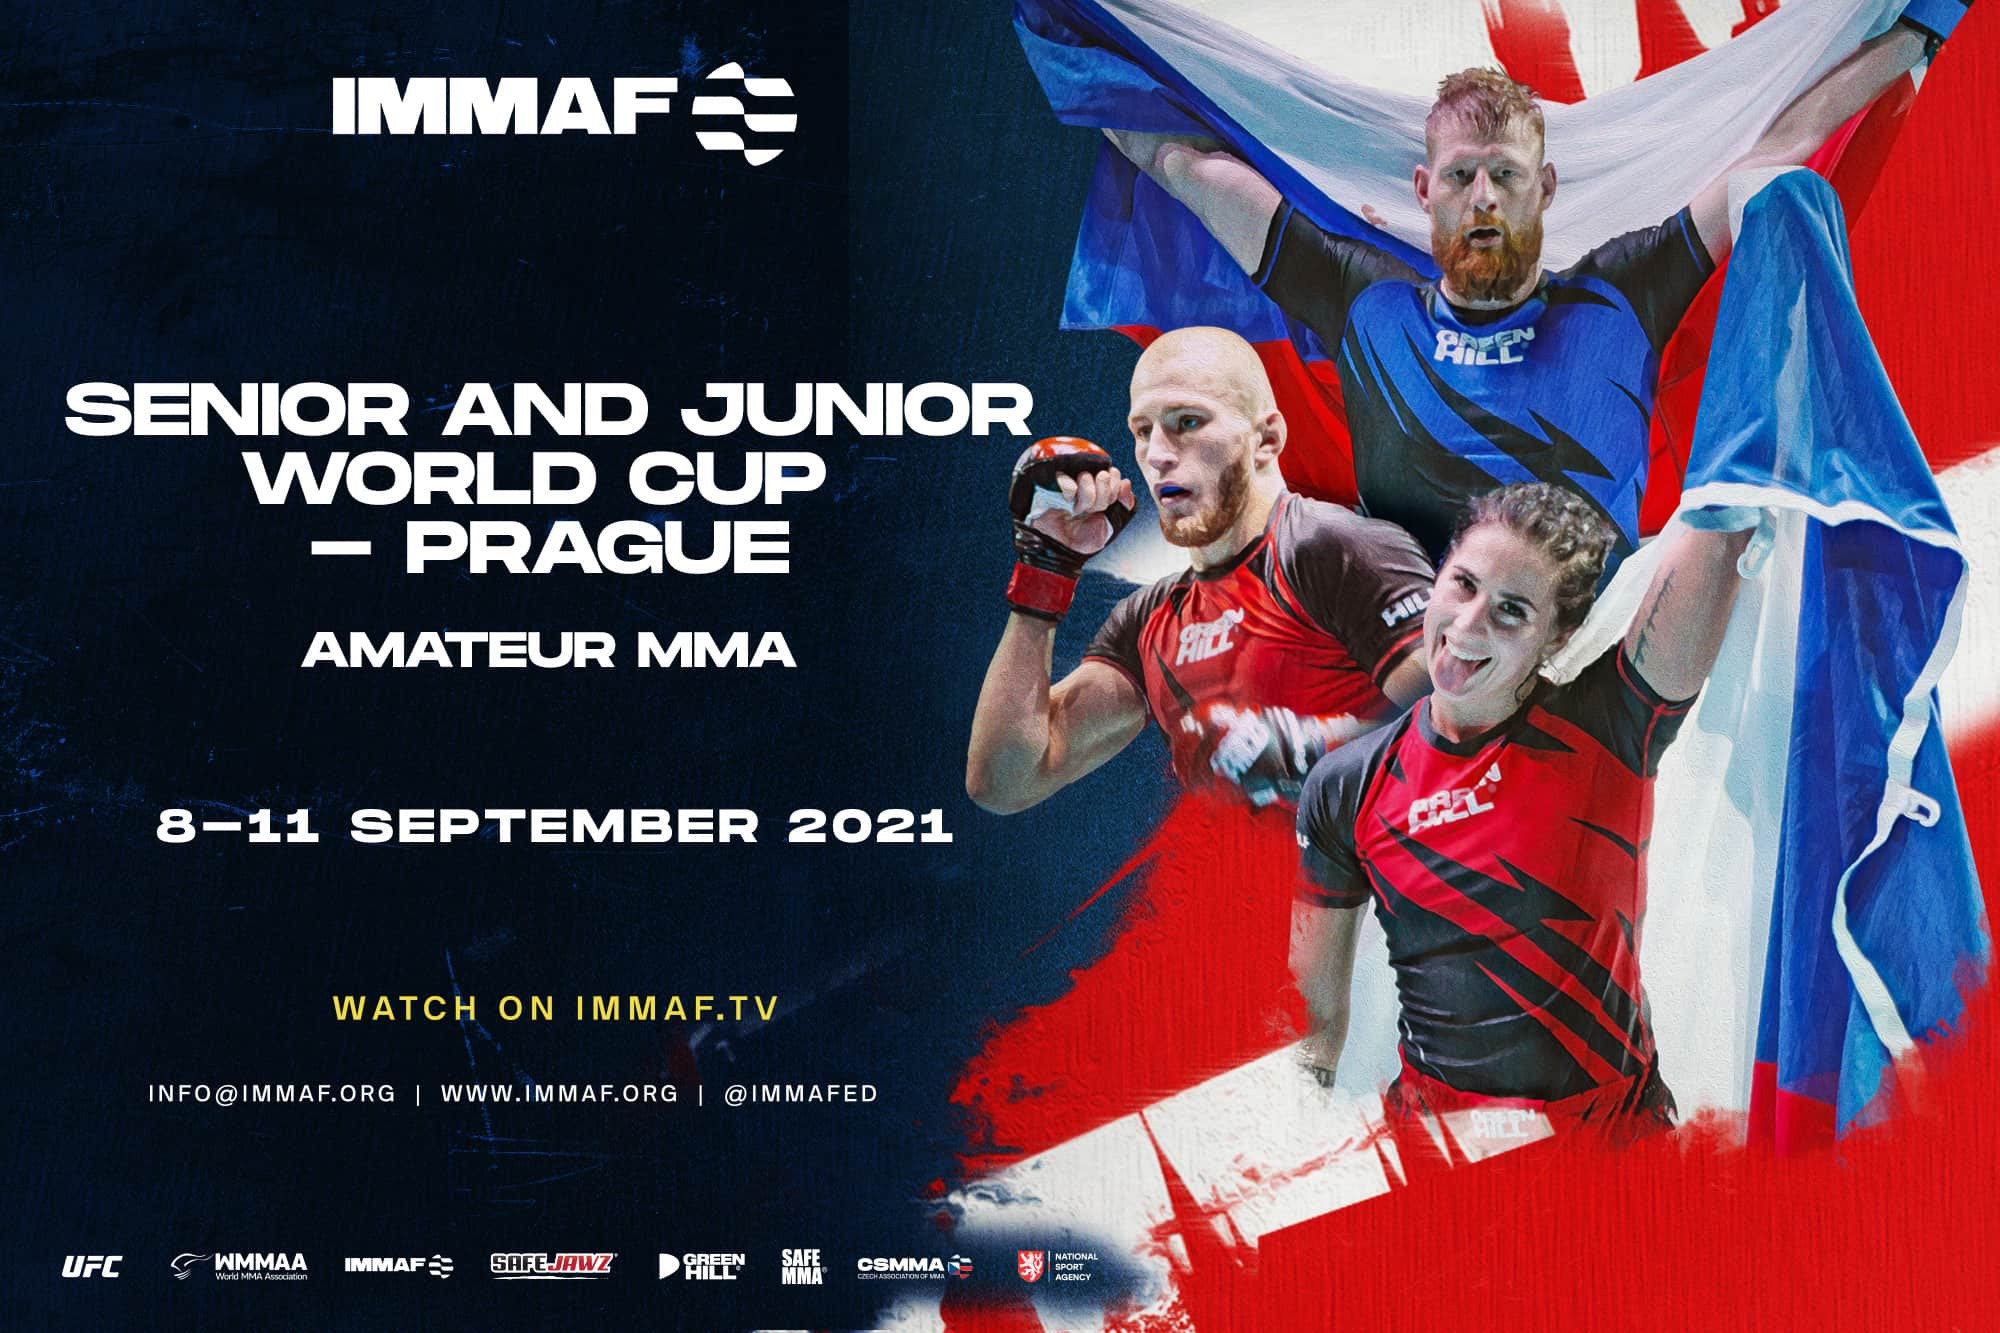 Helping develop immaf.org and the live viewing experience for the IMMAF's major championships are set to be among Mikhail Mazur's main responsibilities ©IMMAF